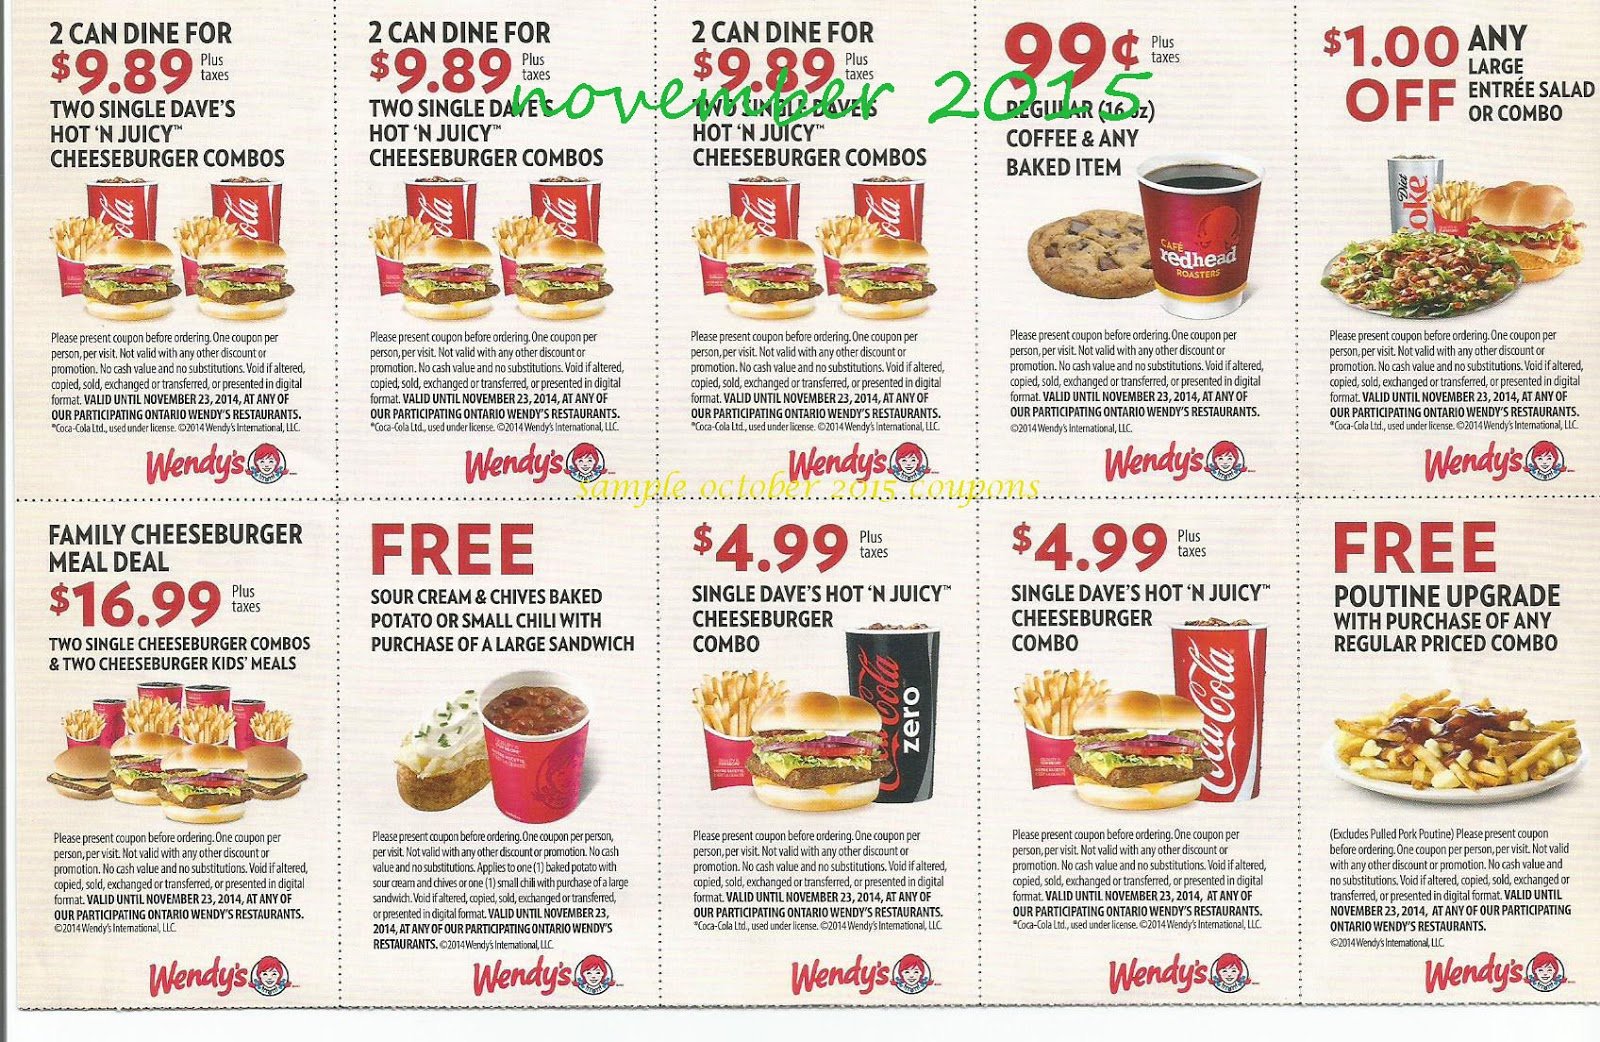 free printable Wendys Coupons for 2016 (22)